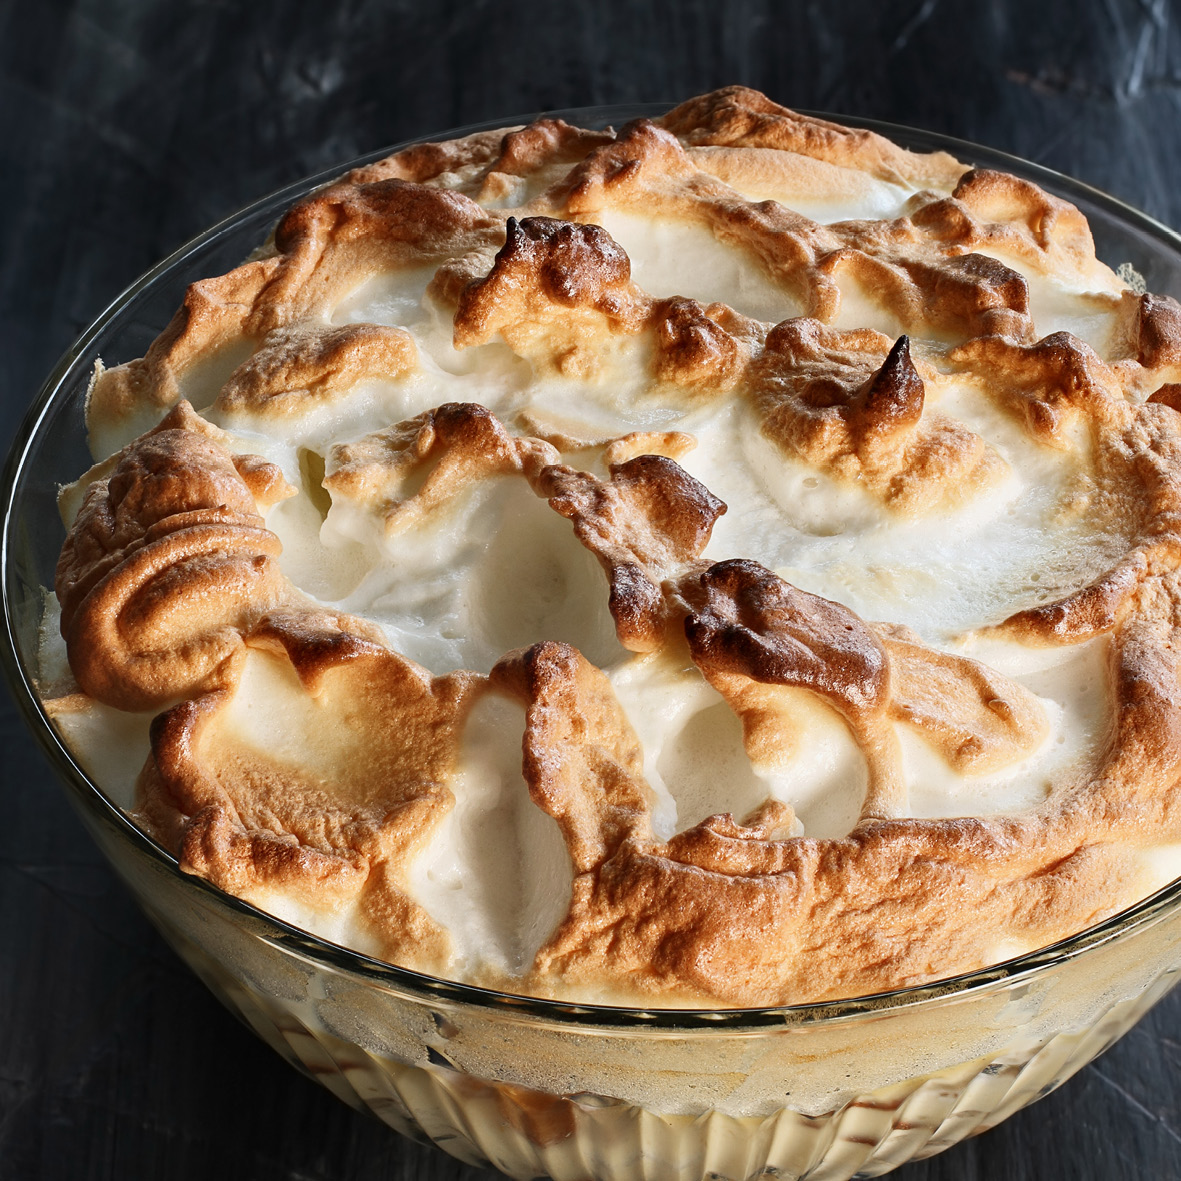 banana_pudding_with_meringue.jpg